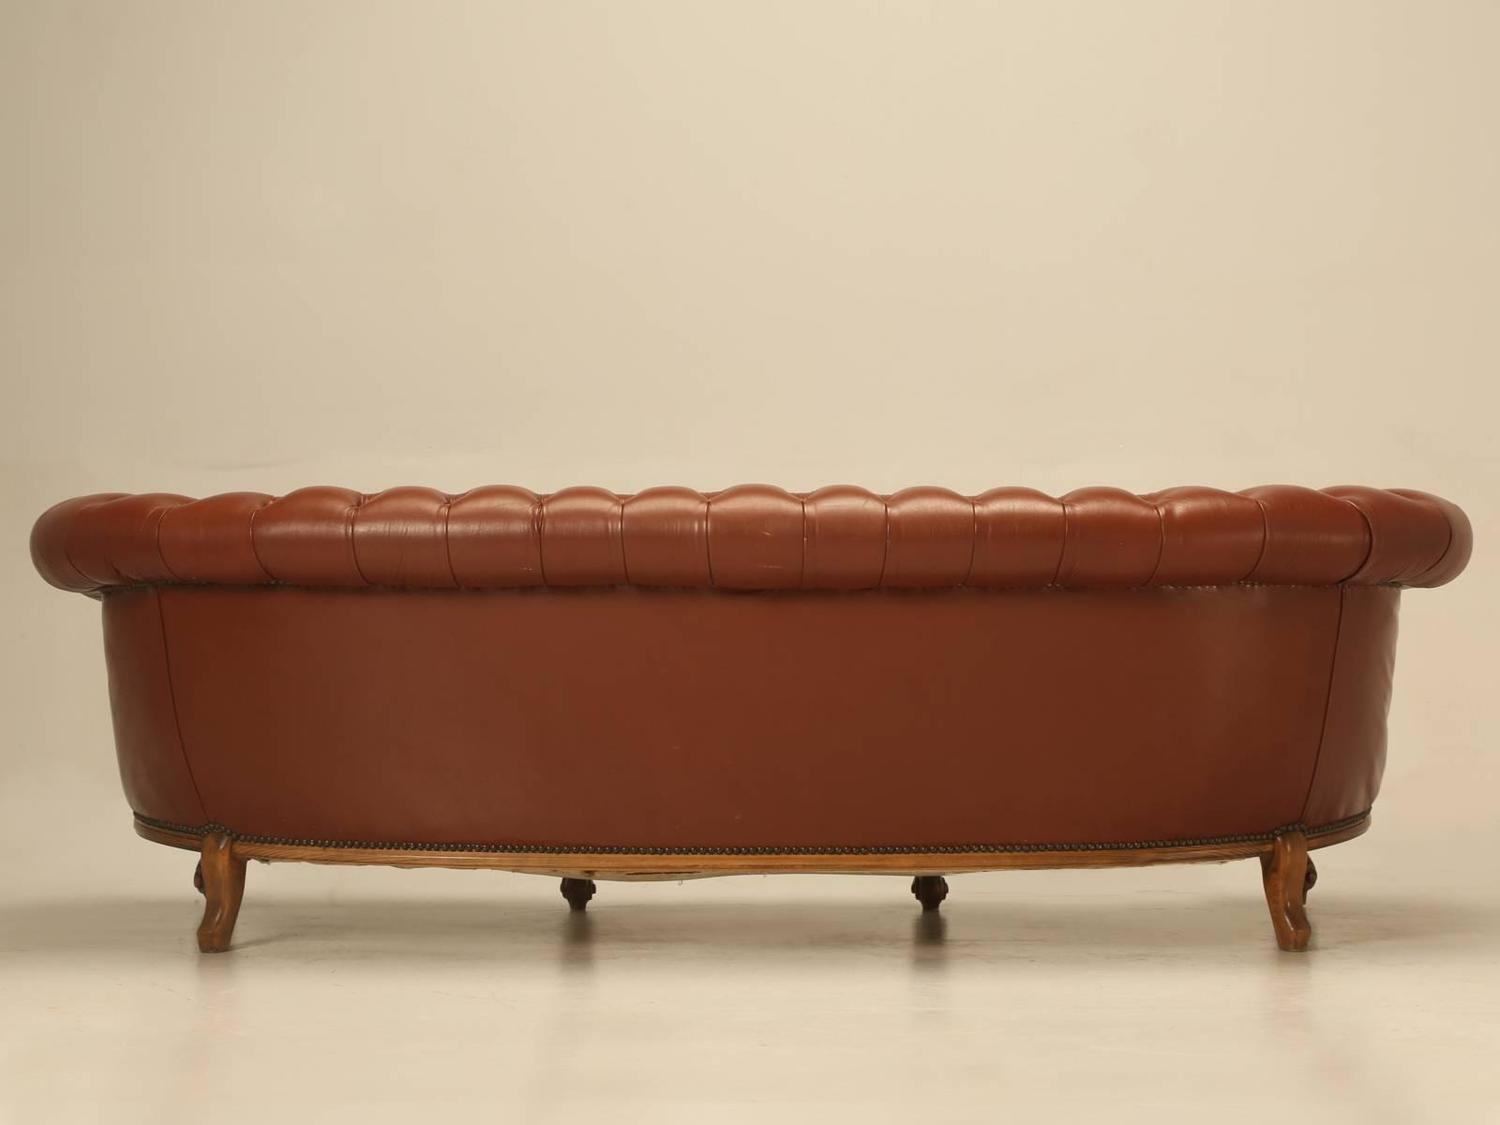 french leather tufted chesterfield style sofa for sale at 1stdibs. Black Bedroom Furniture Sets. Home Design Ideas